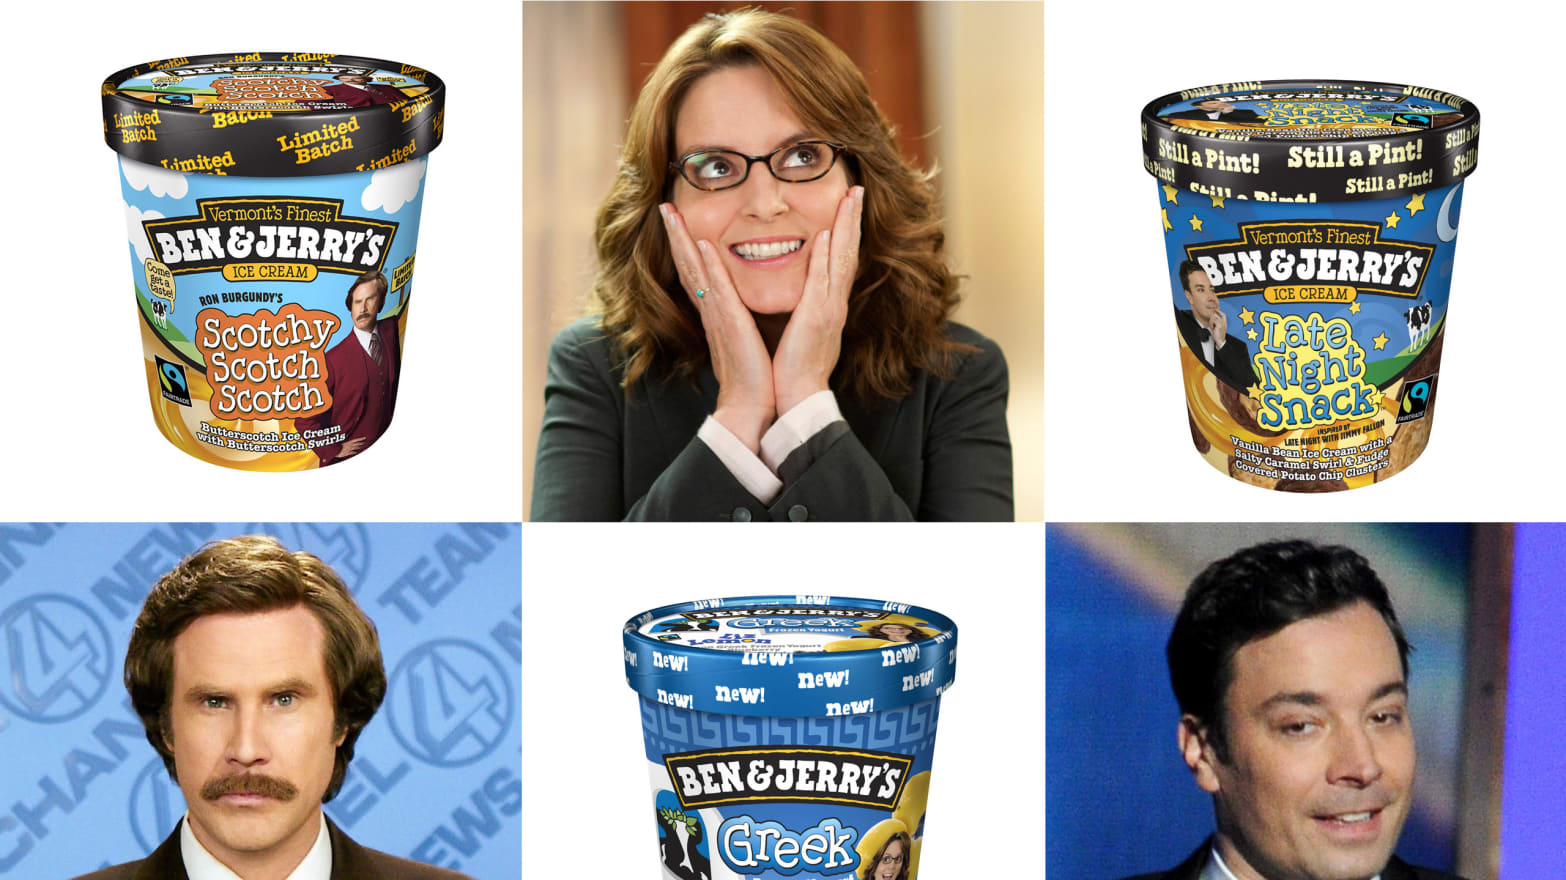 72 Best Ben and Jerrys images | Ben, jerrys ice cream, Ice ...